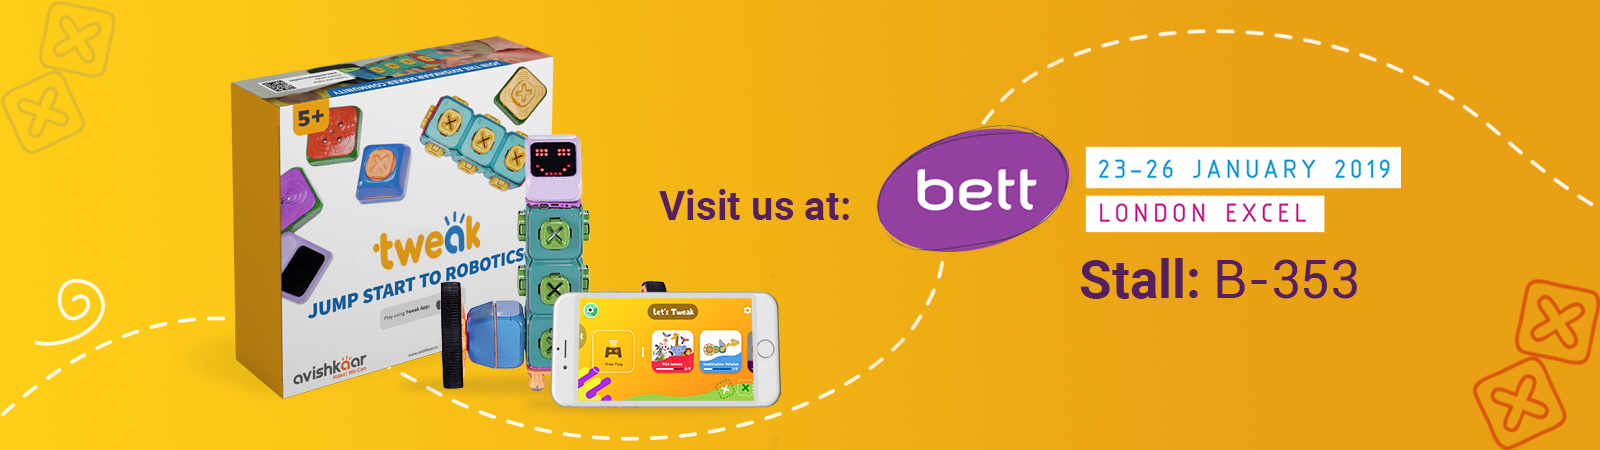 Home Page Bett Banner